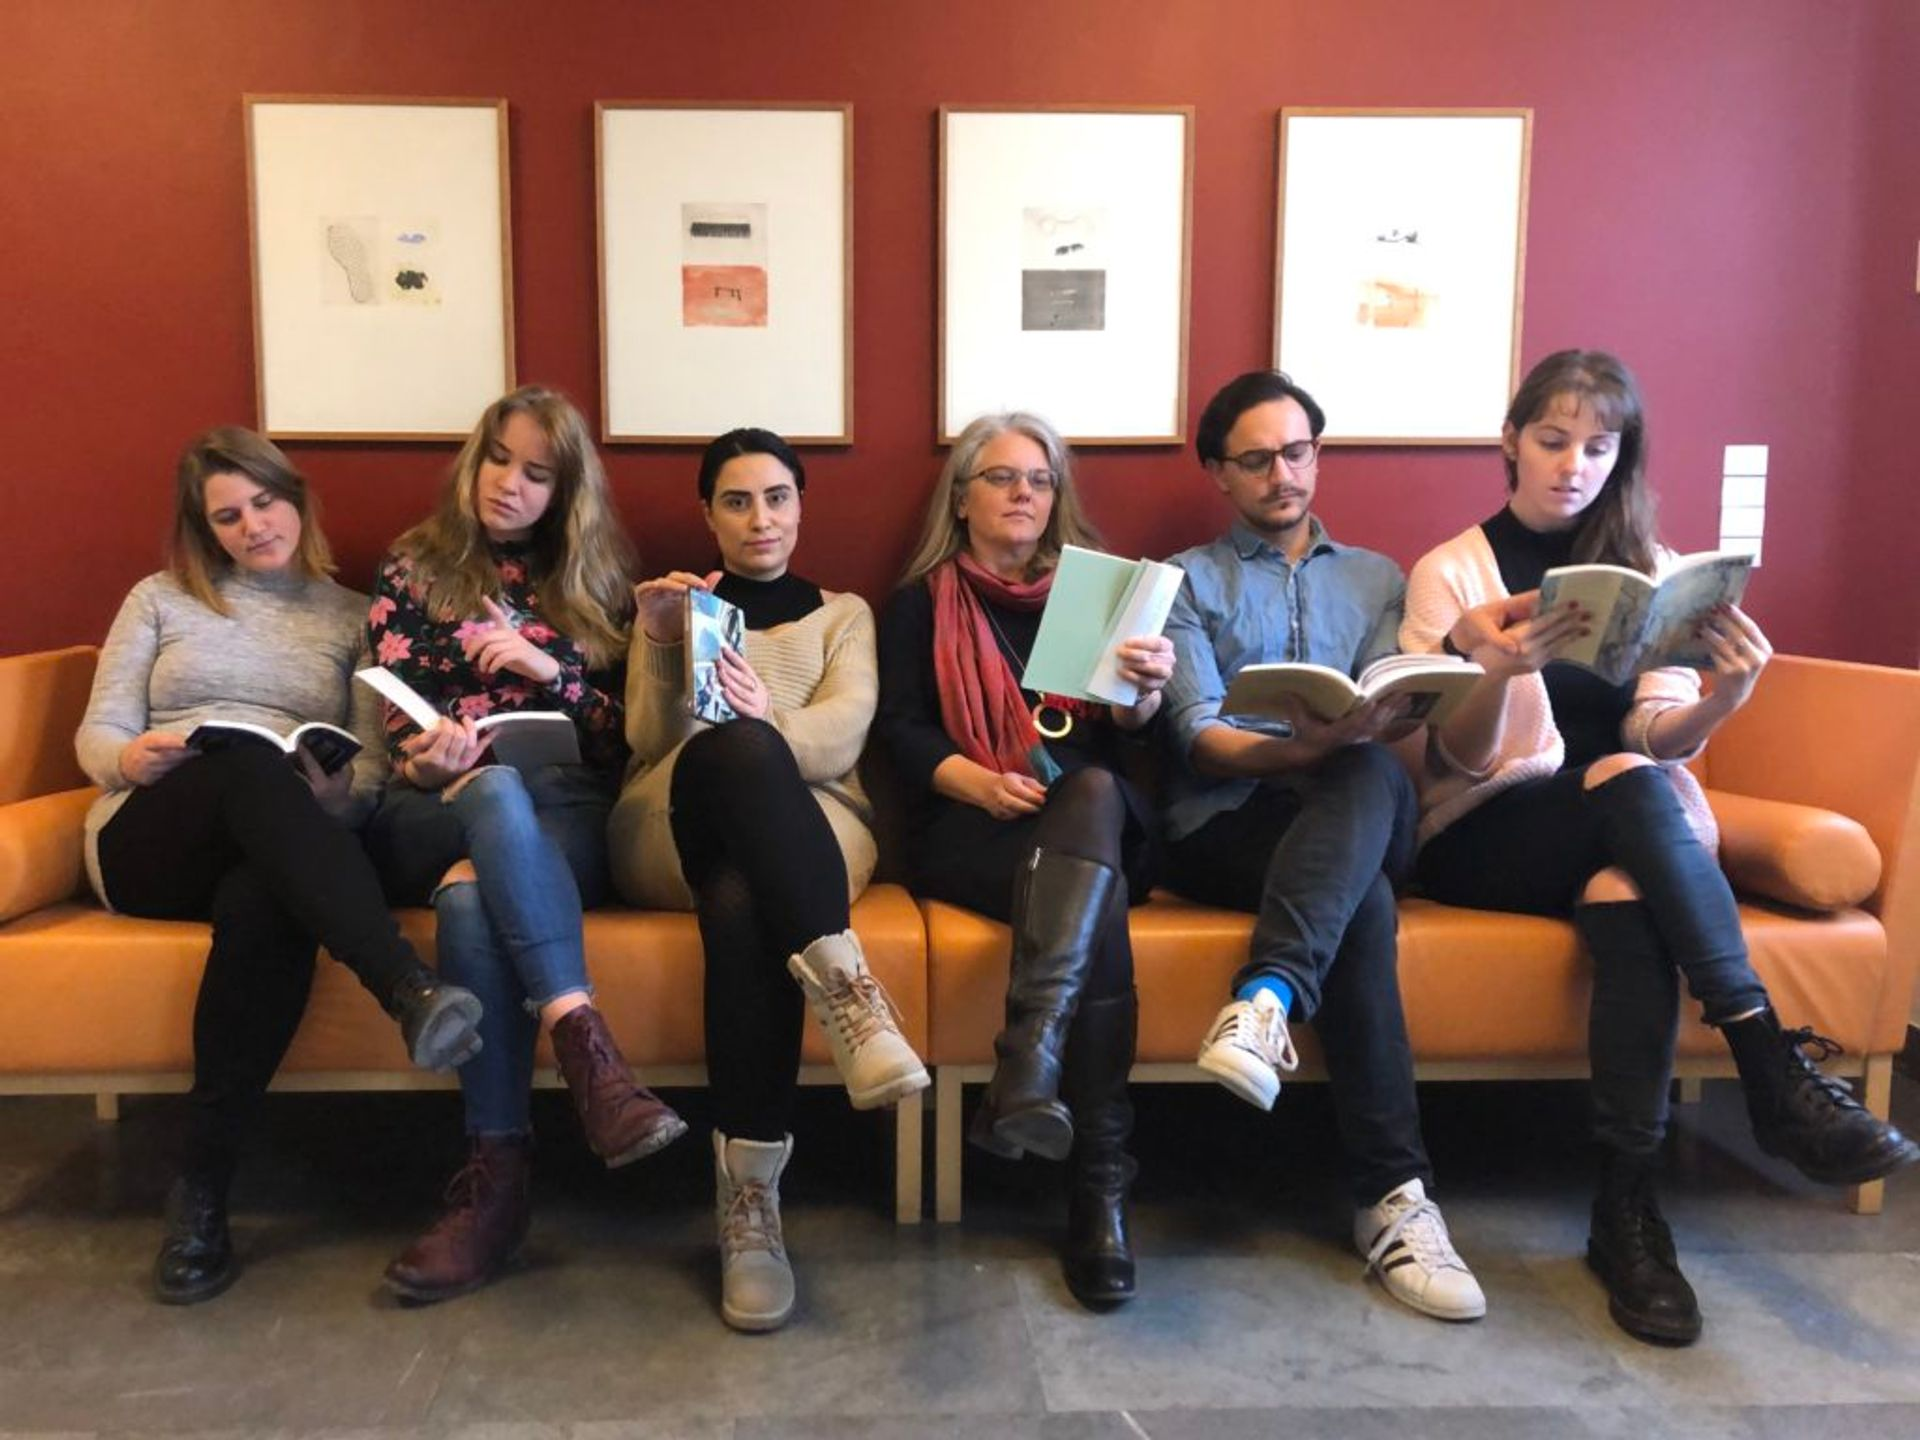 Emma sits with her teacher and coursemates on a sofa, reading books, clearly posing for the photo.